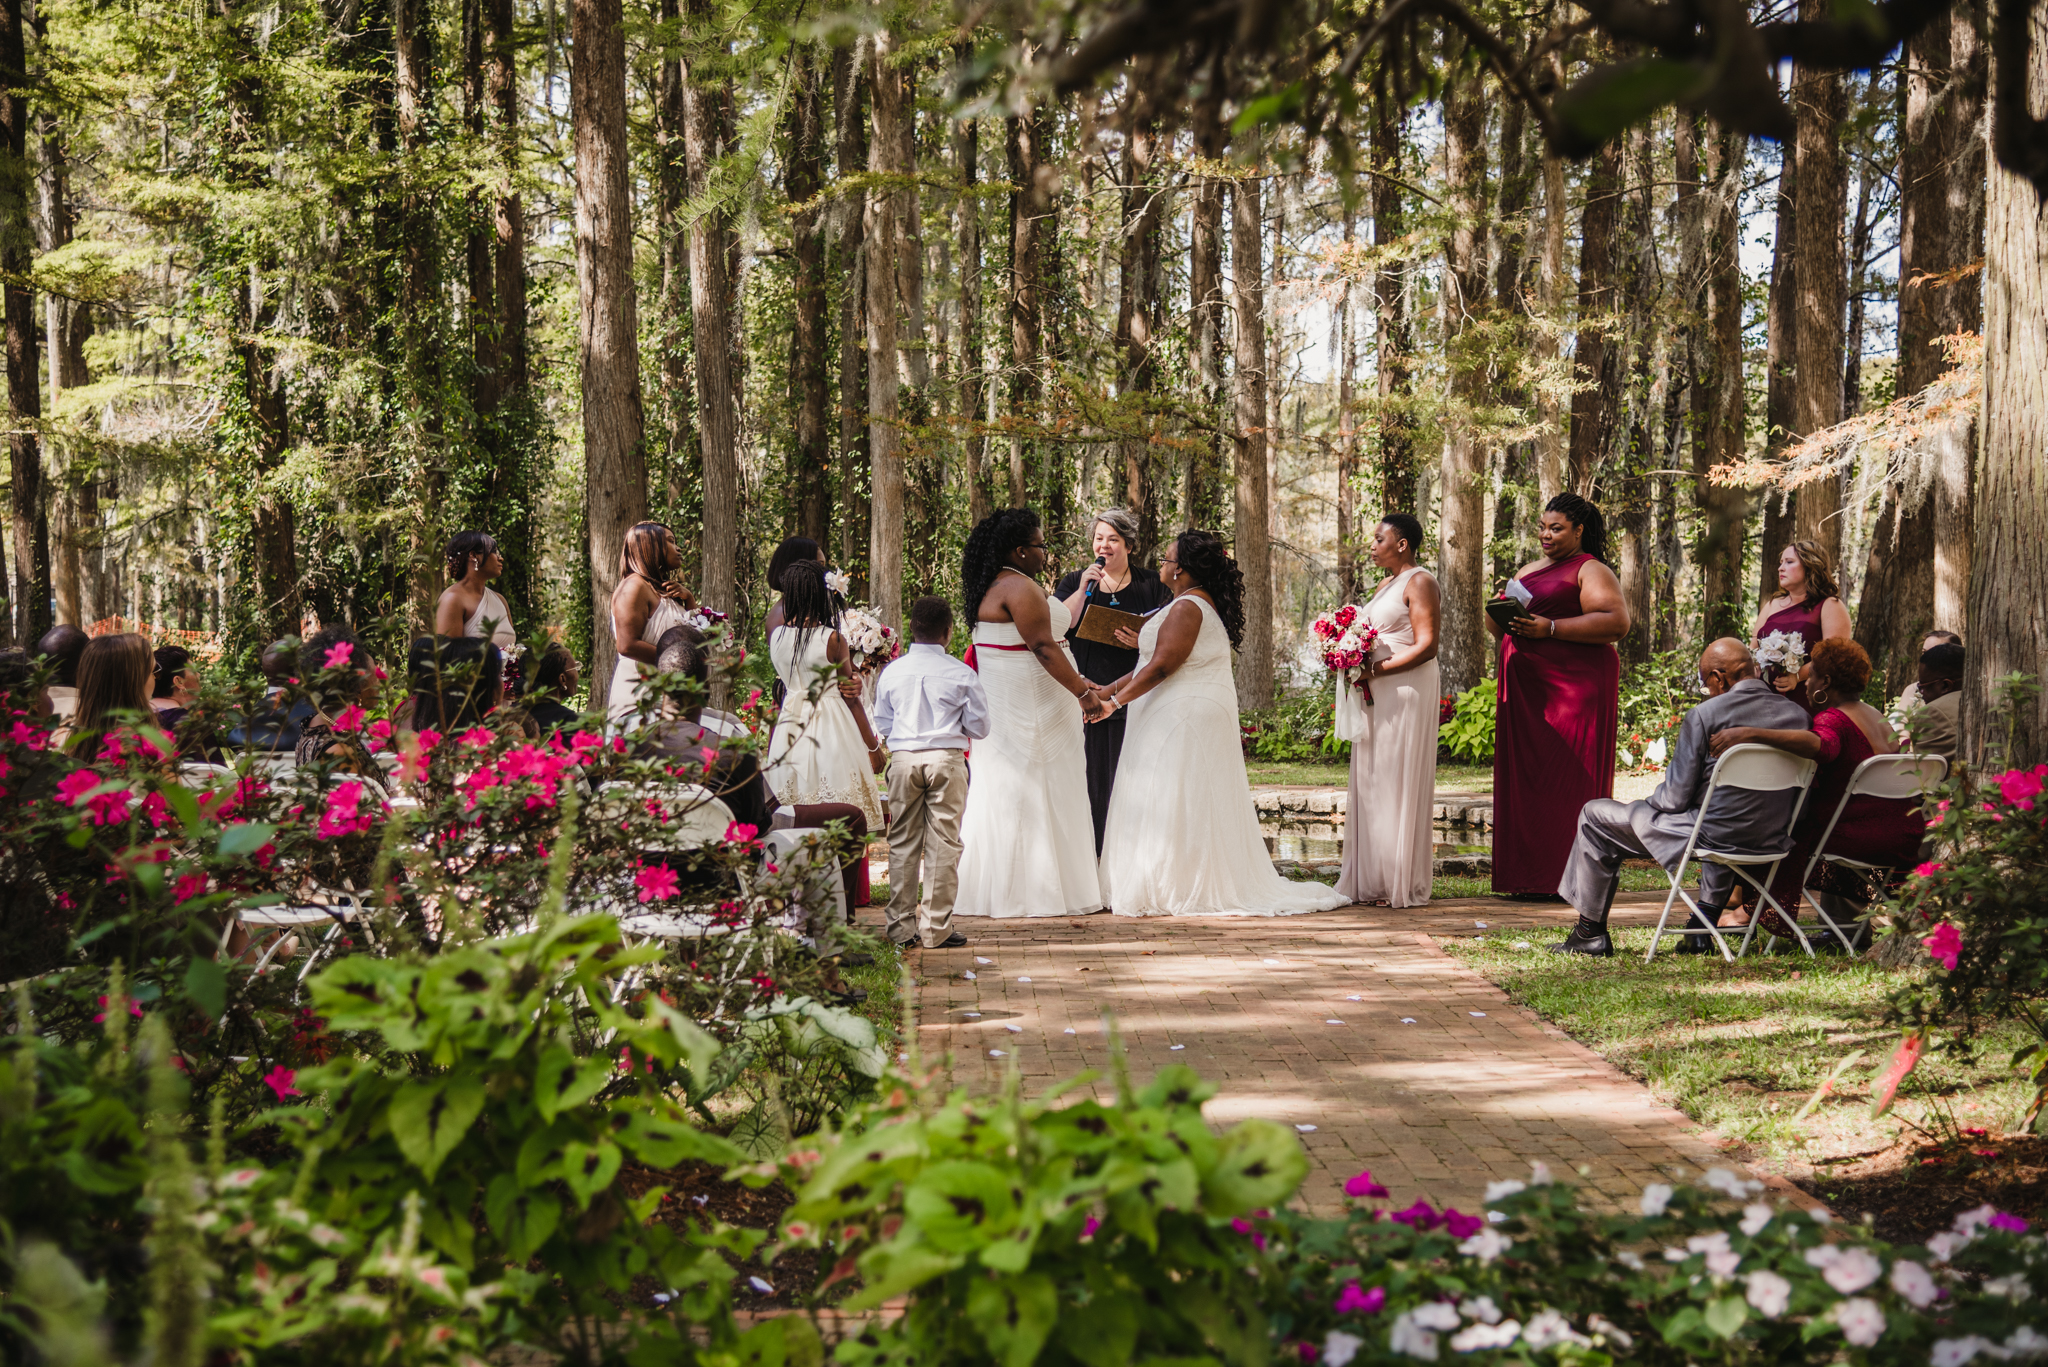 Raleigh-wedding-photographer-two-brides-wilmington-garden-rose-trail-images.jpg